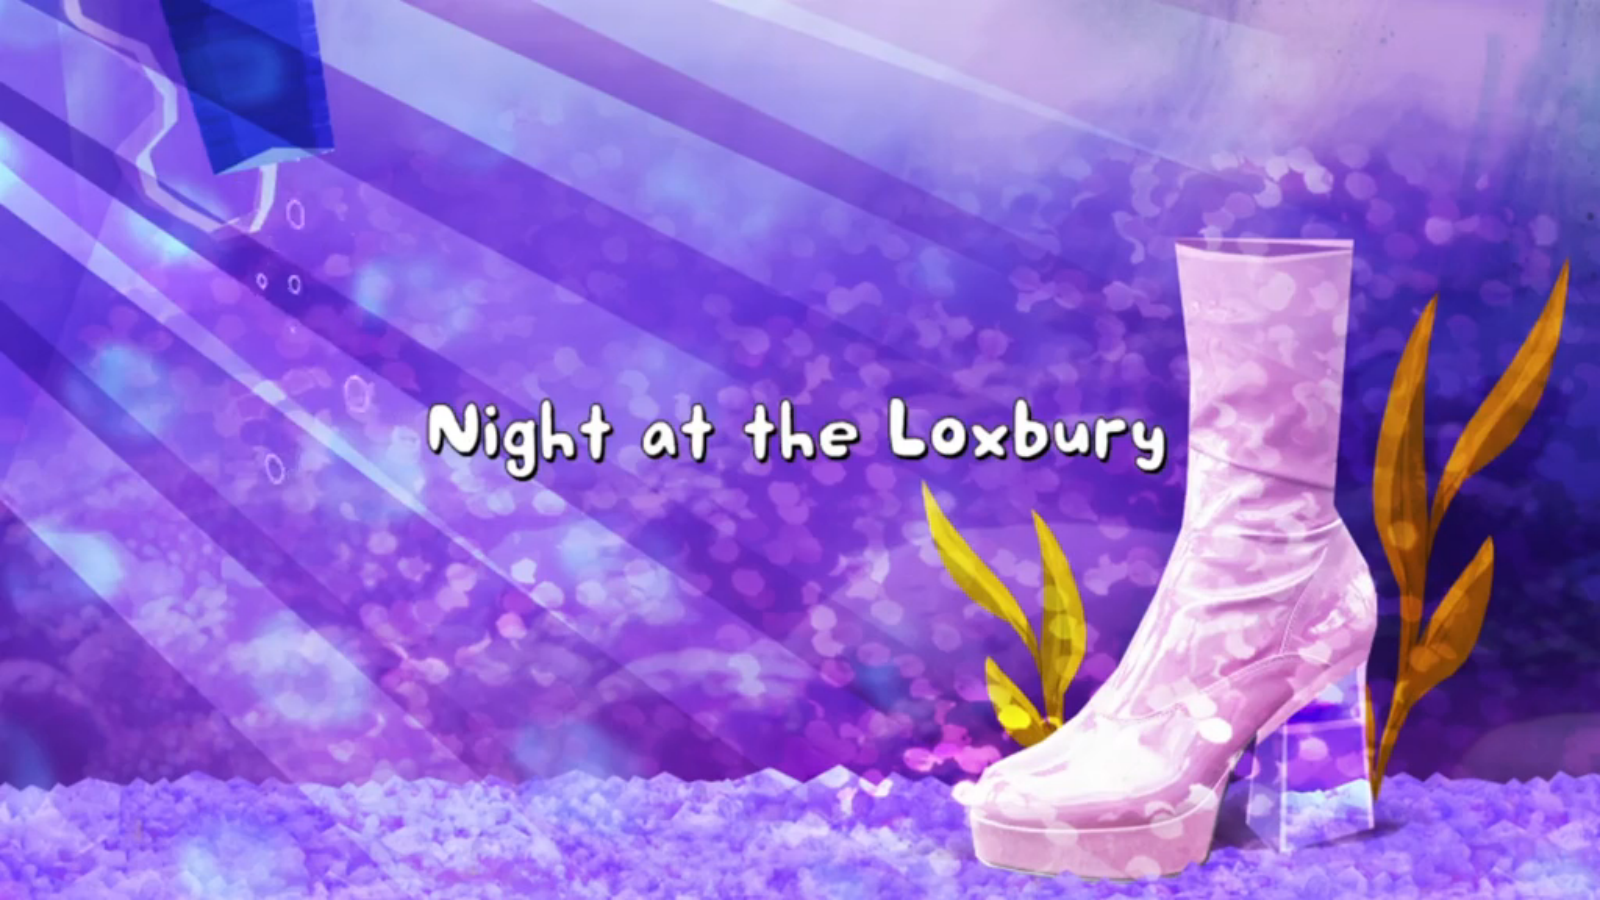 Night at the Loxbury